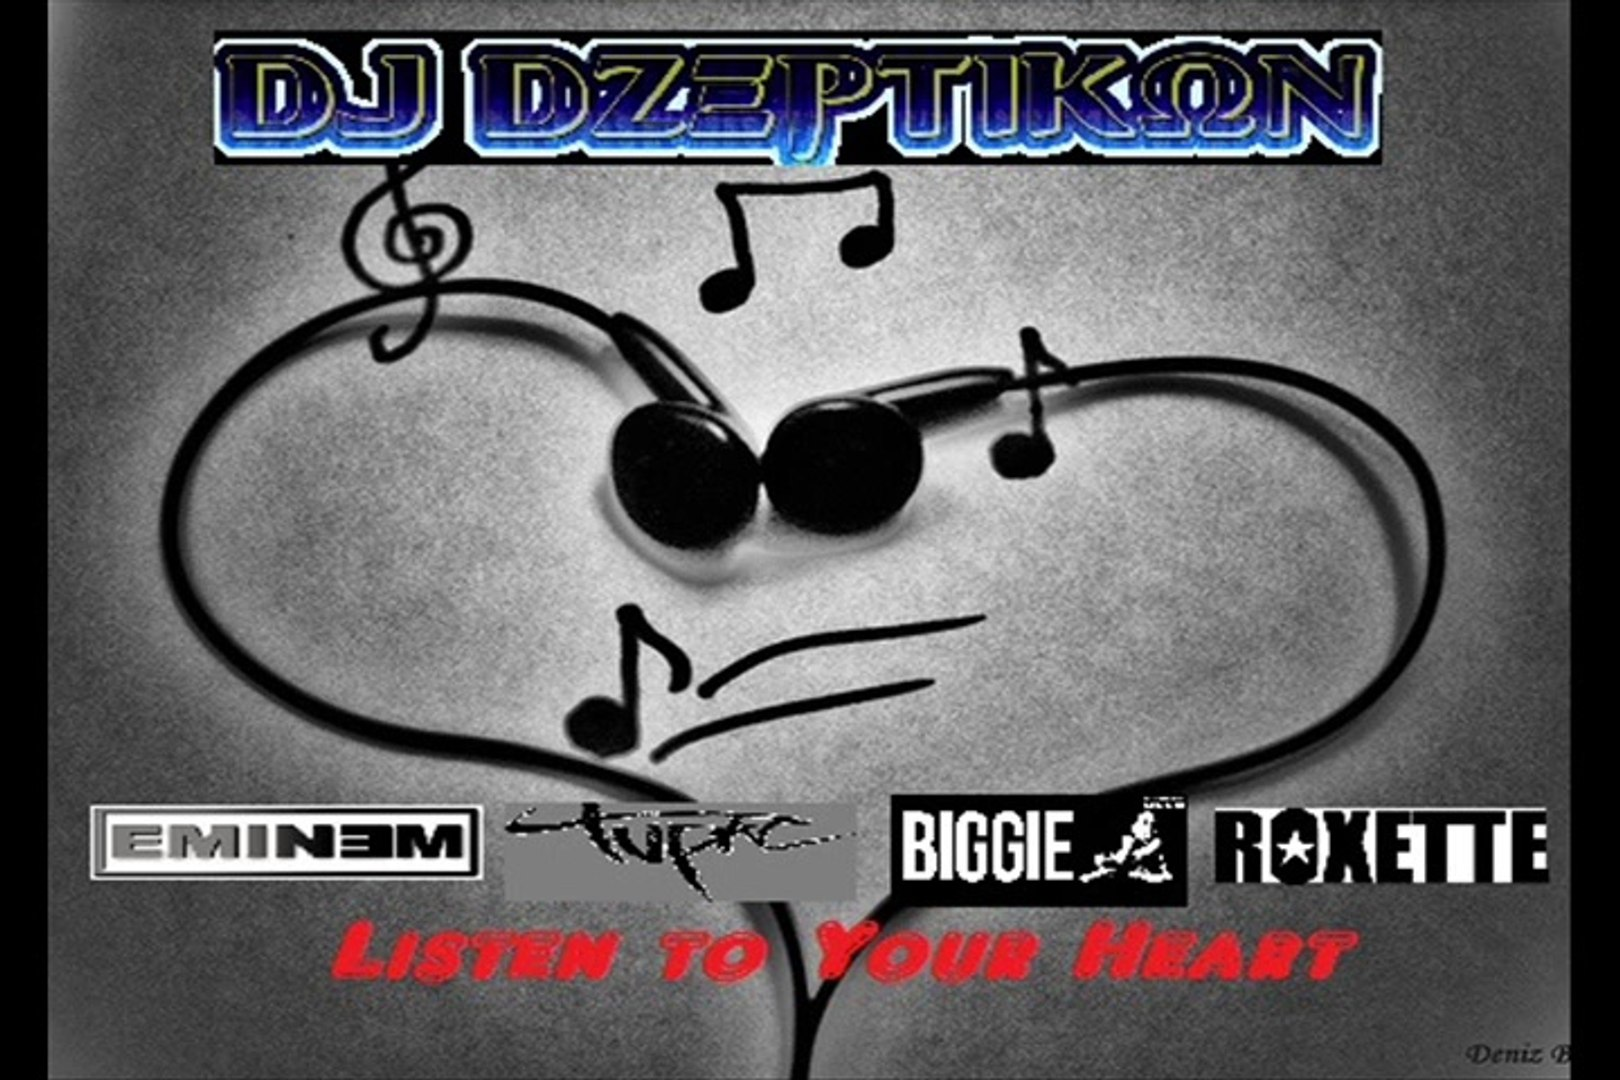 Eminem ft. Tupac, Biggie Smalls & Roxette - Listen to Your Heart (Remix) by DJ DZeptiKon